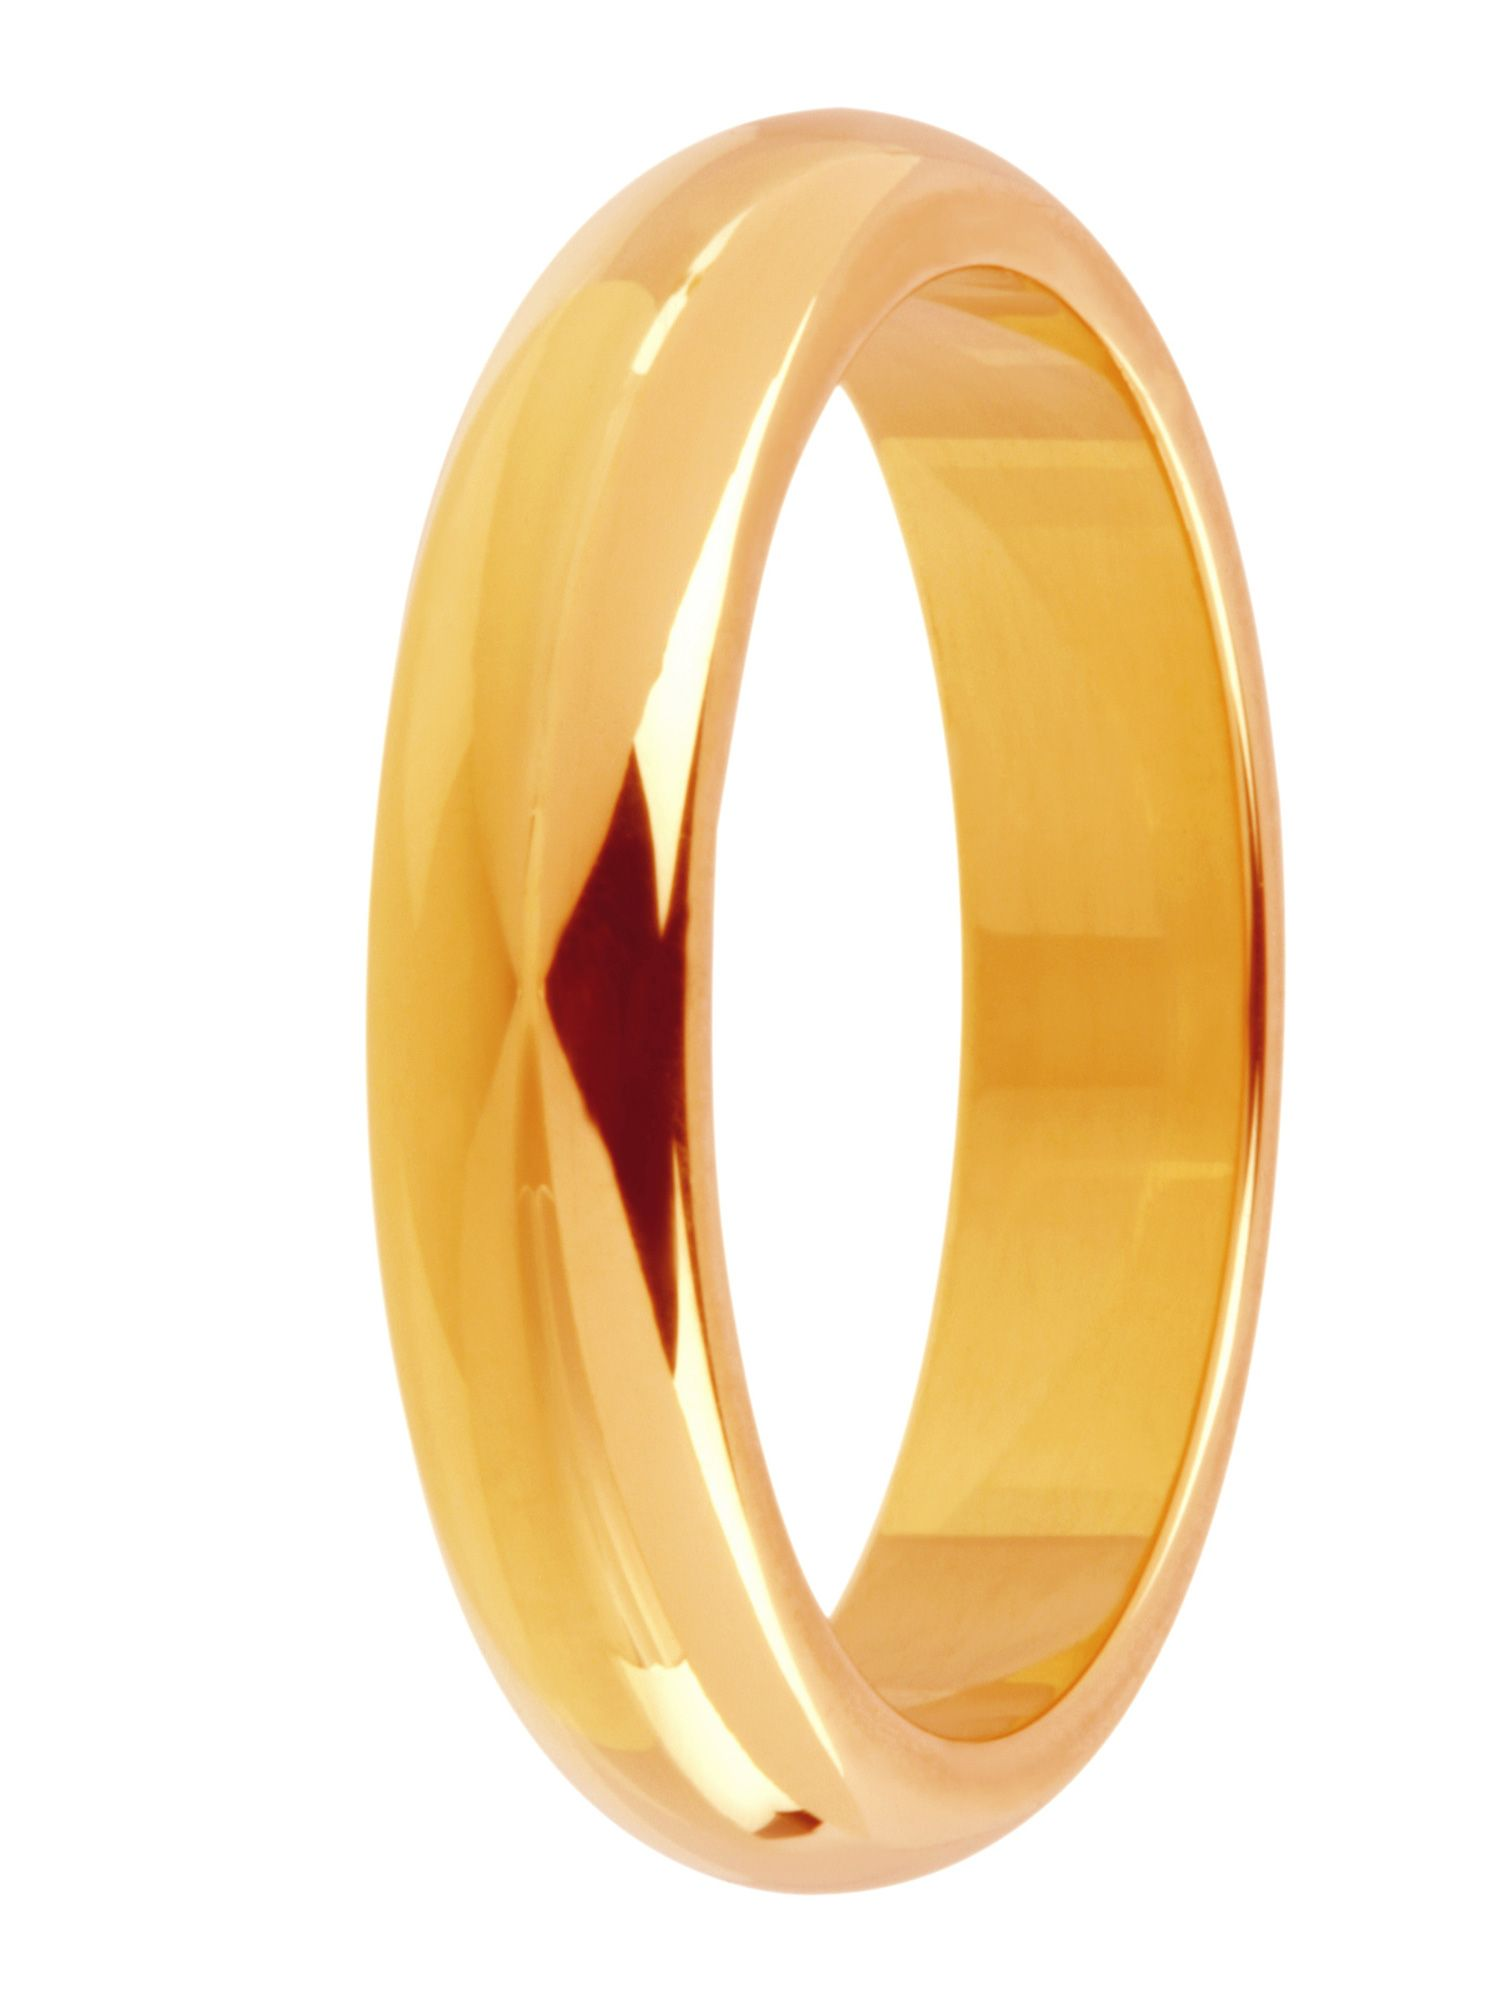 Brides 9ct gold 4mm court wedding ring - Gold